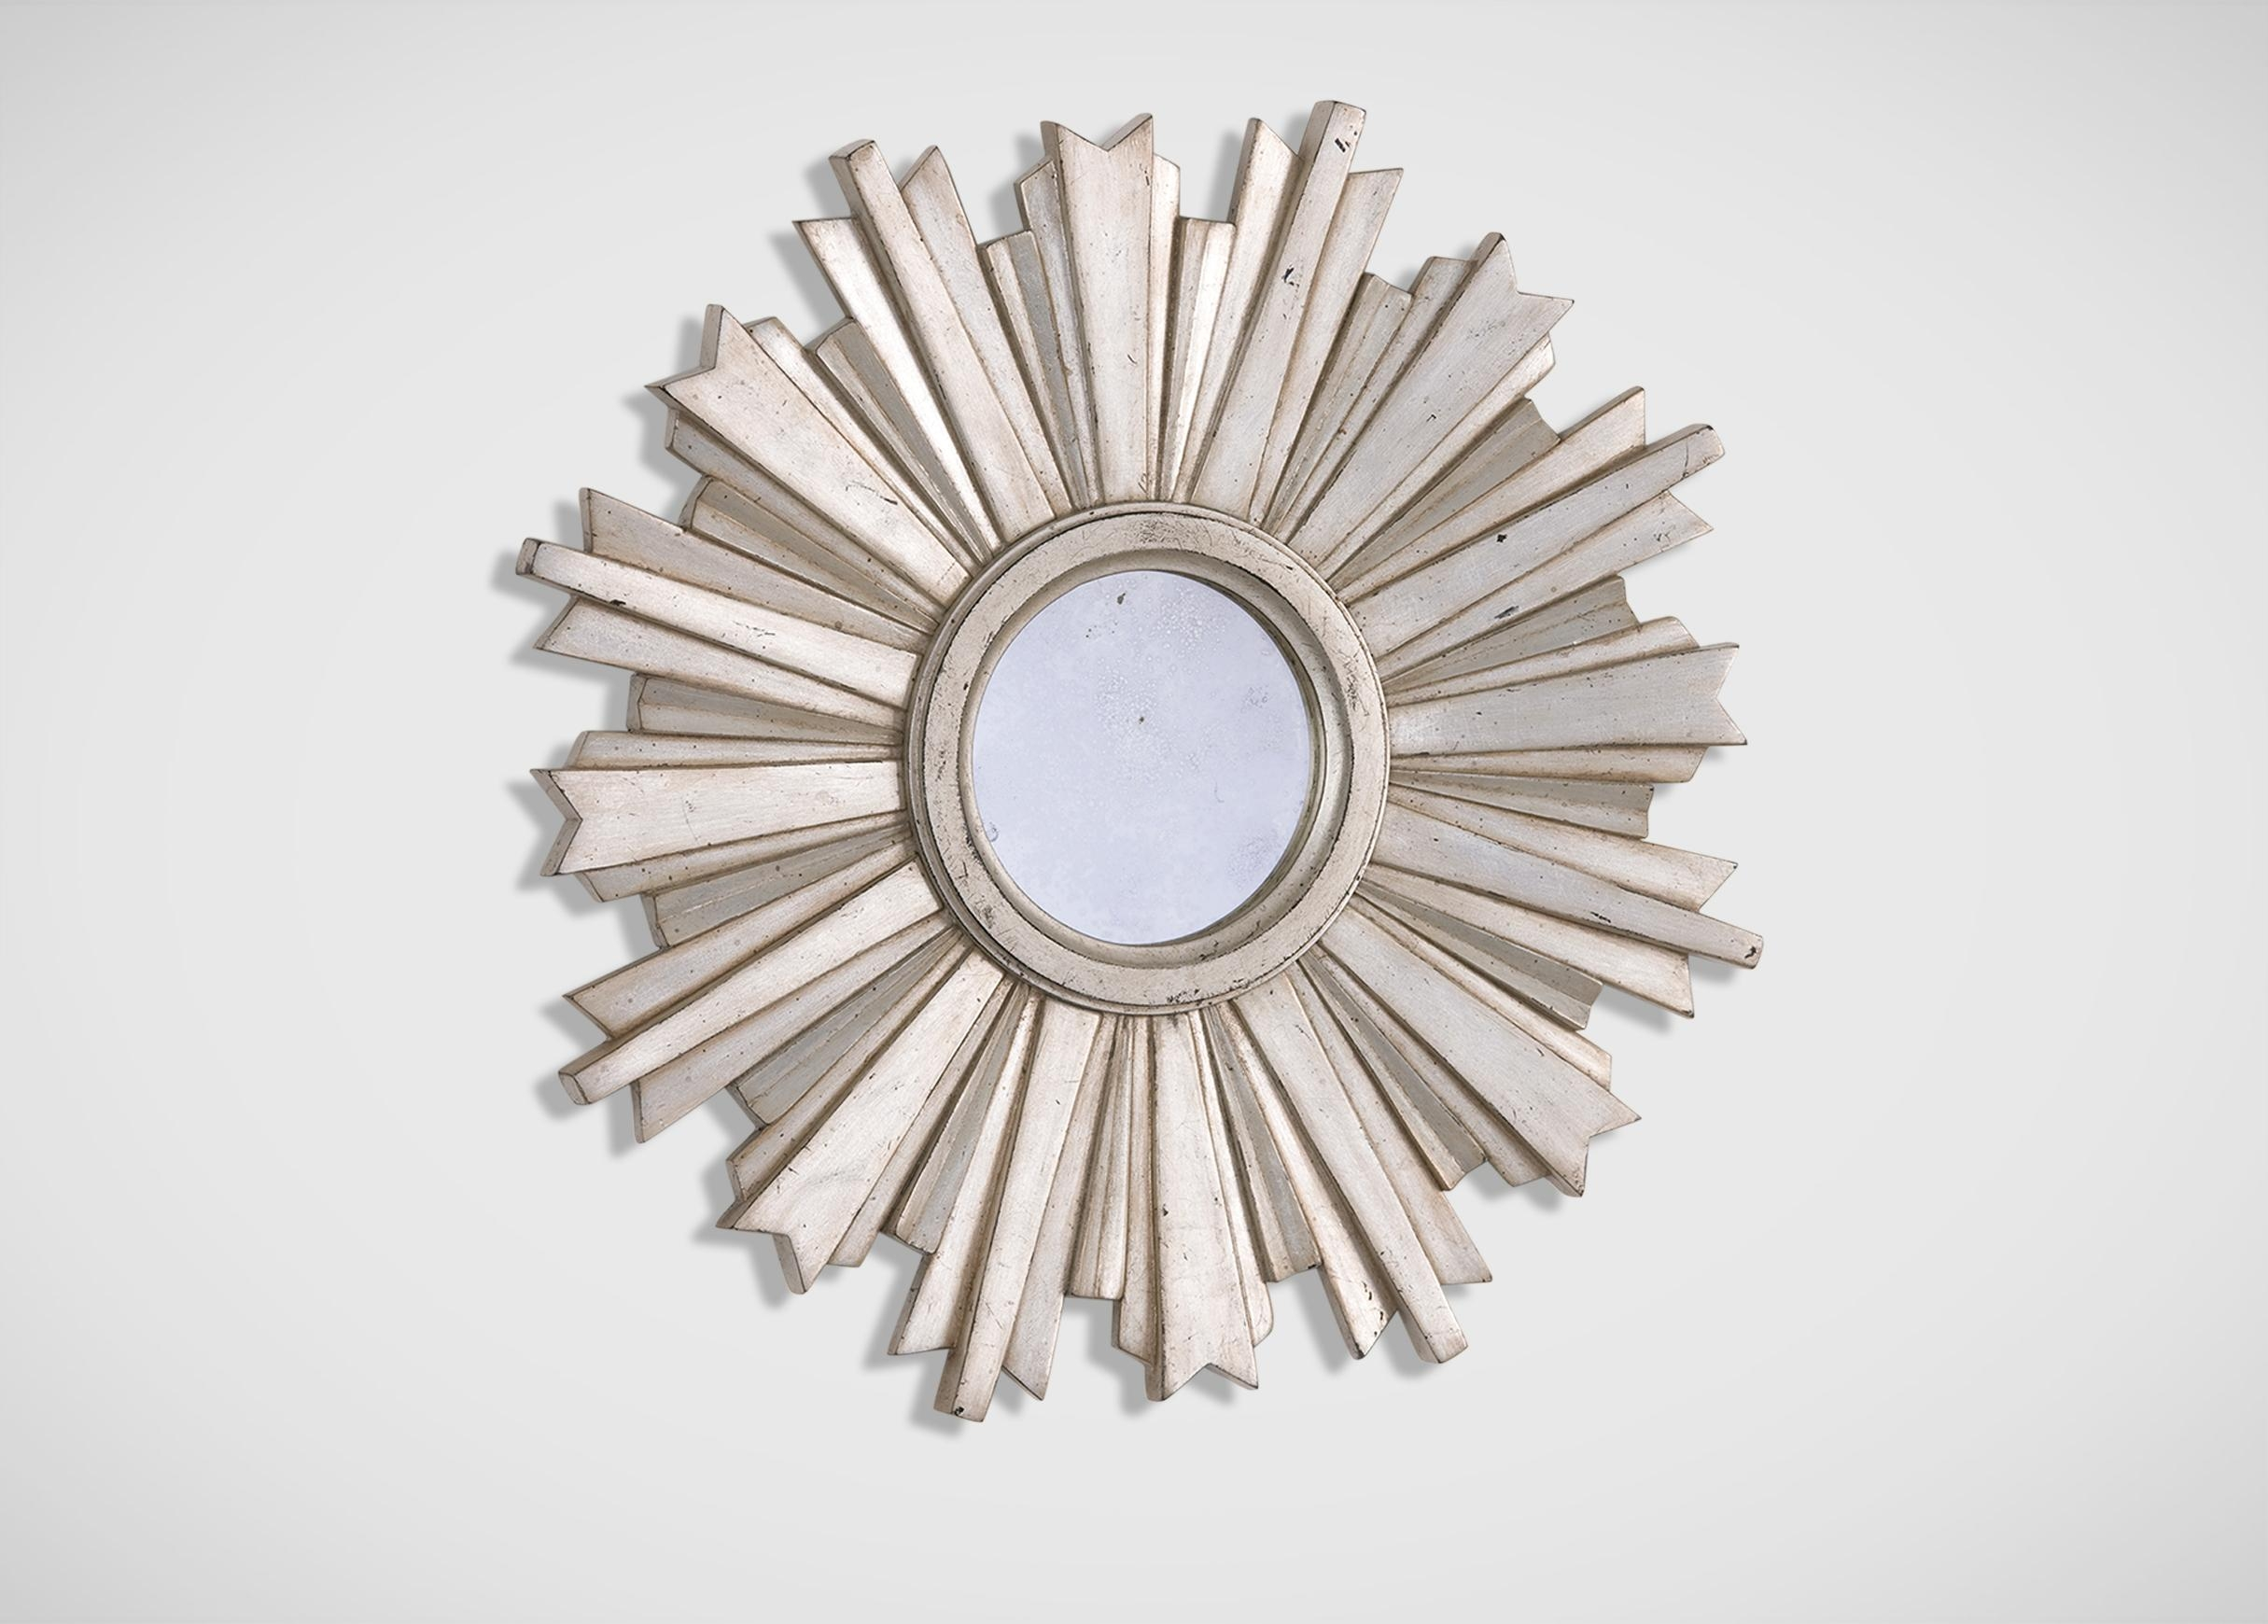 Mini Silver Starburst Mirror | Mirrors Inside Small Silver Mirrors (Image 9 of 20)